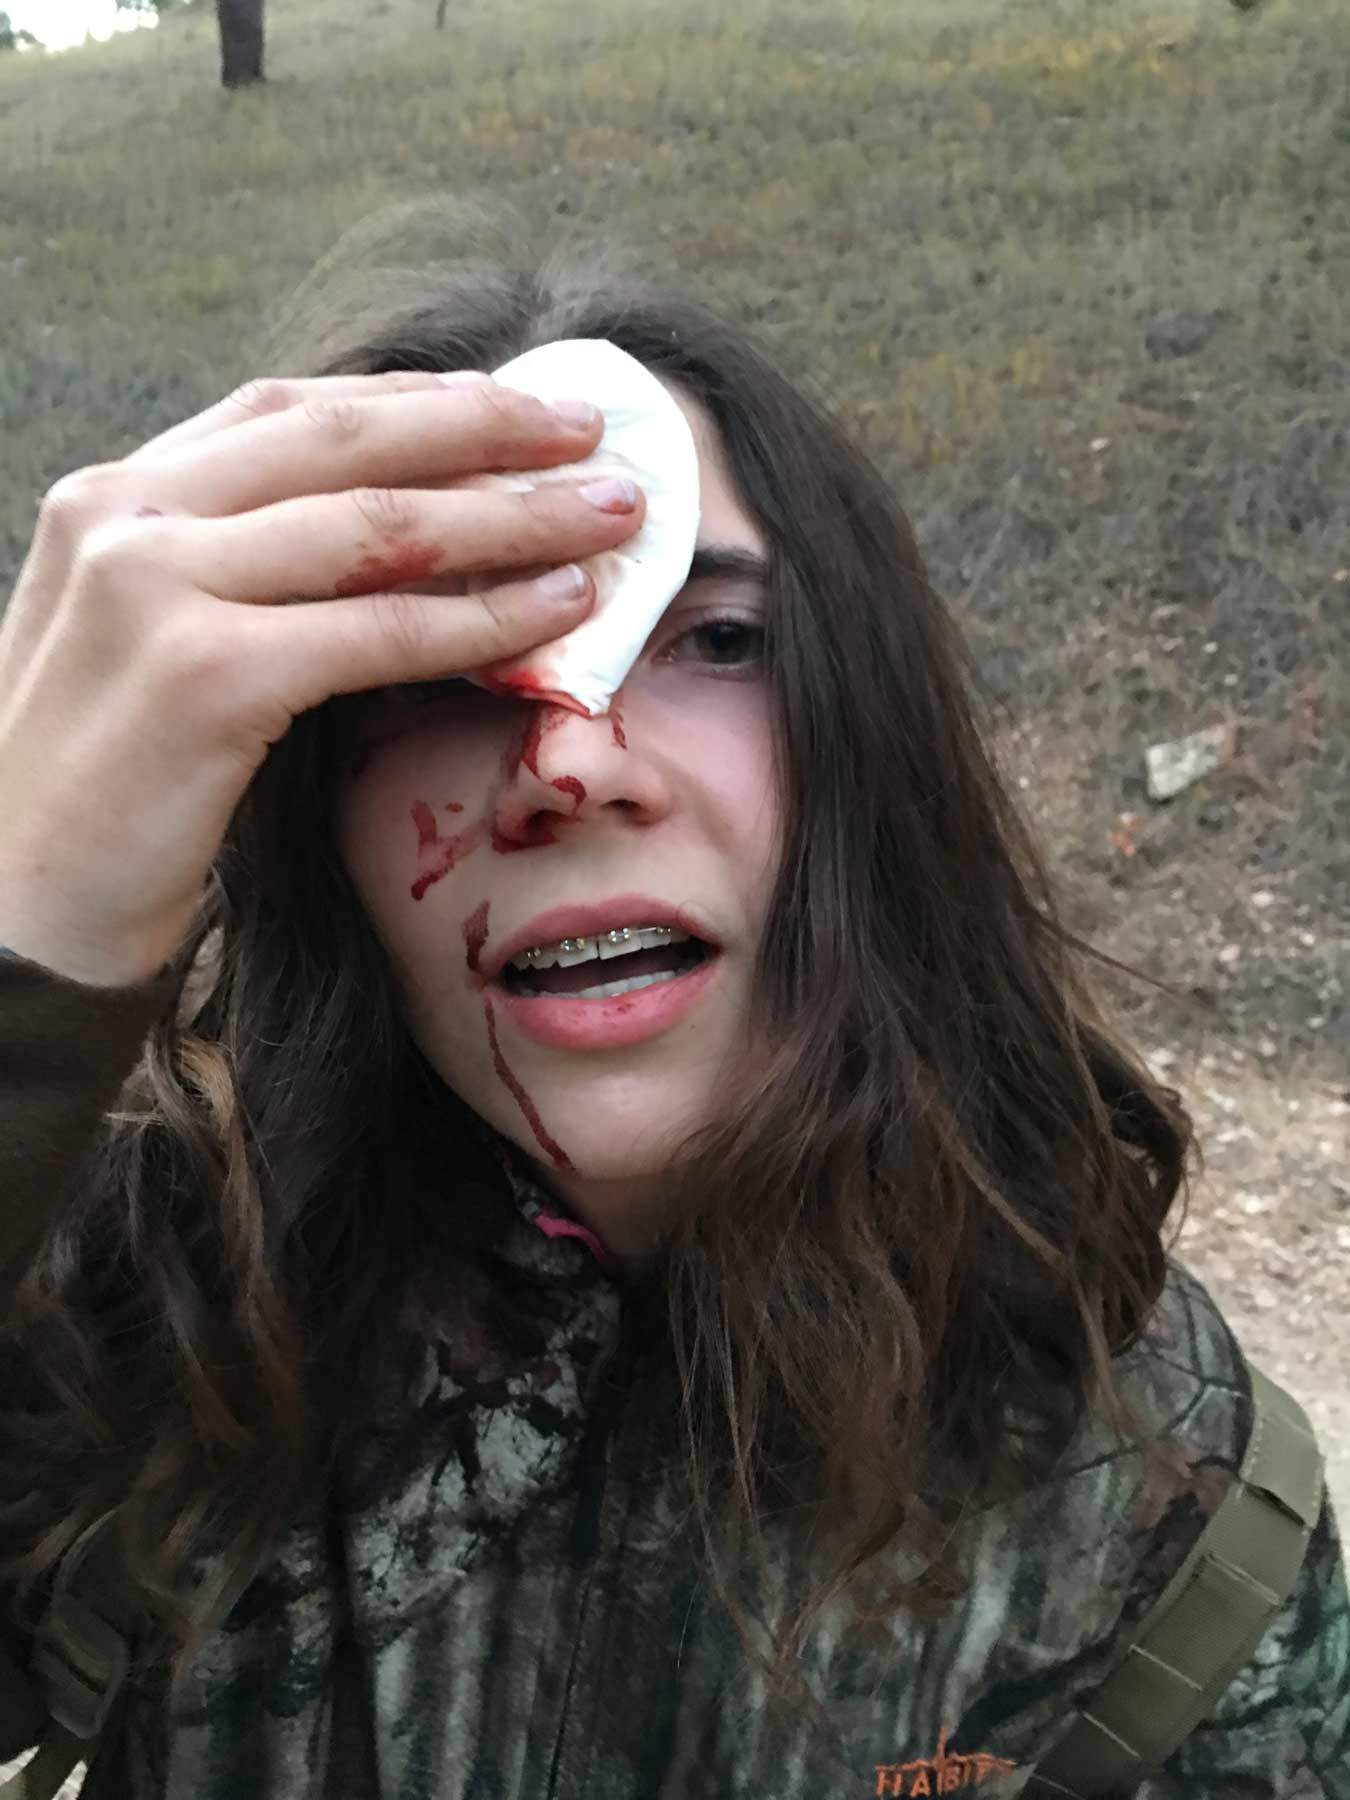 Woman holding a bandage and bleeding from the forehead